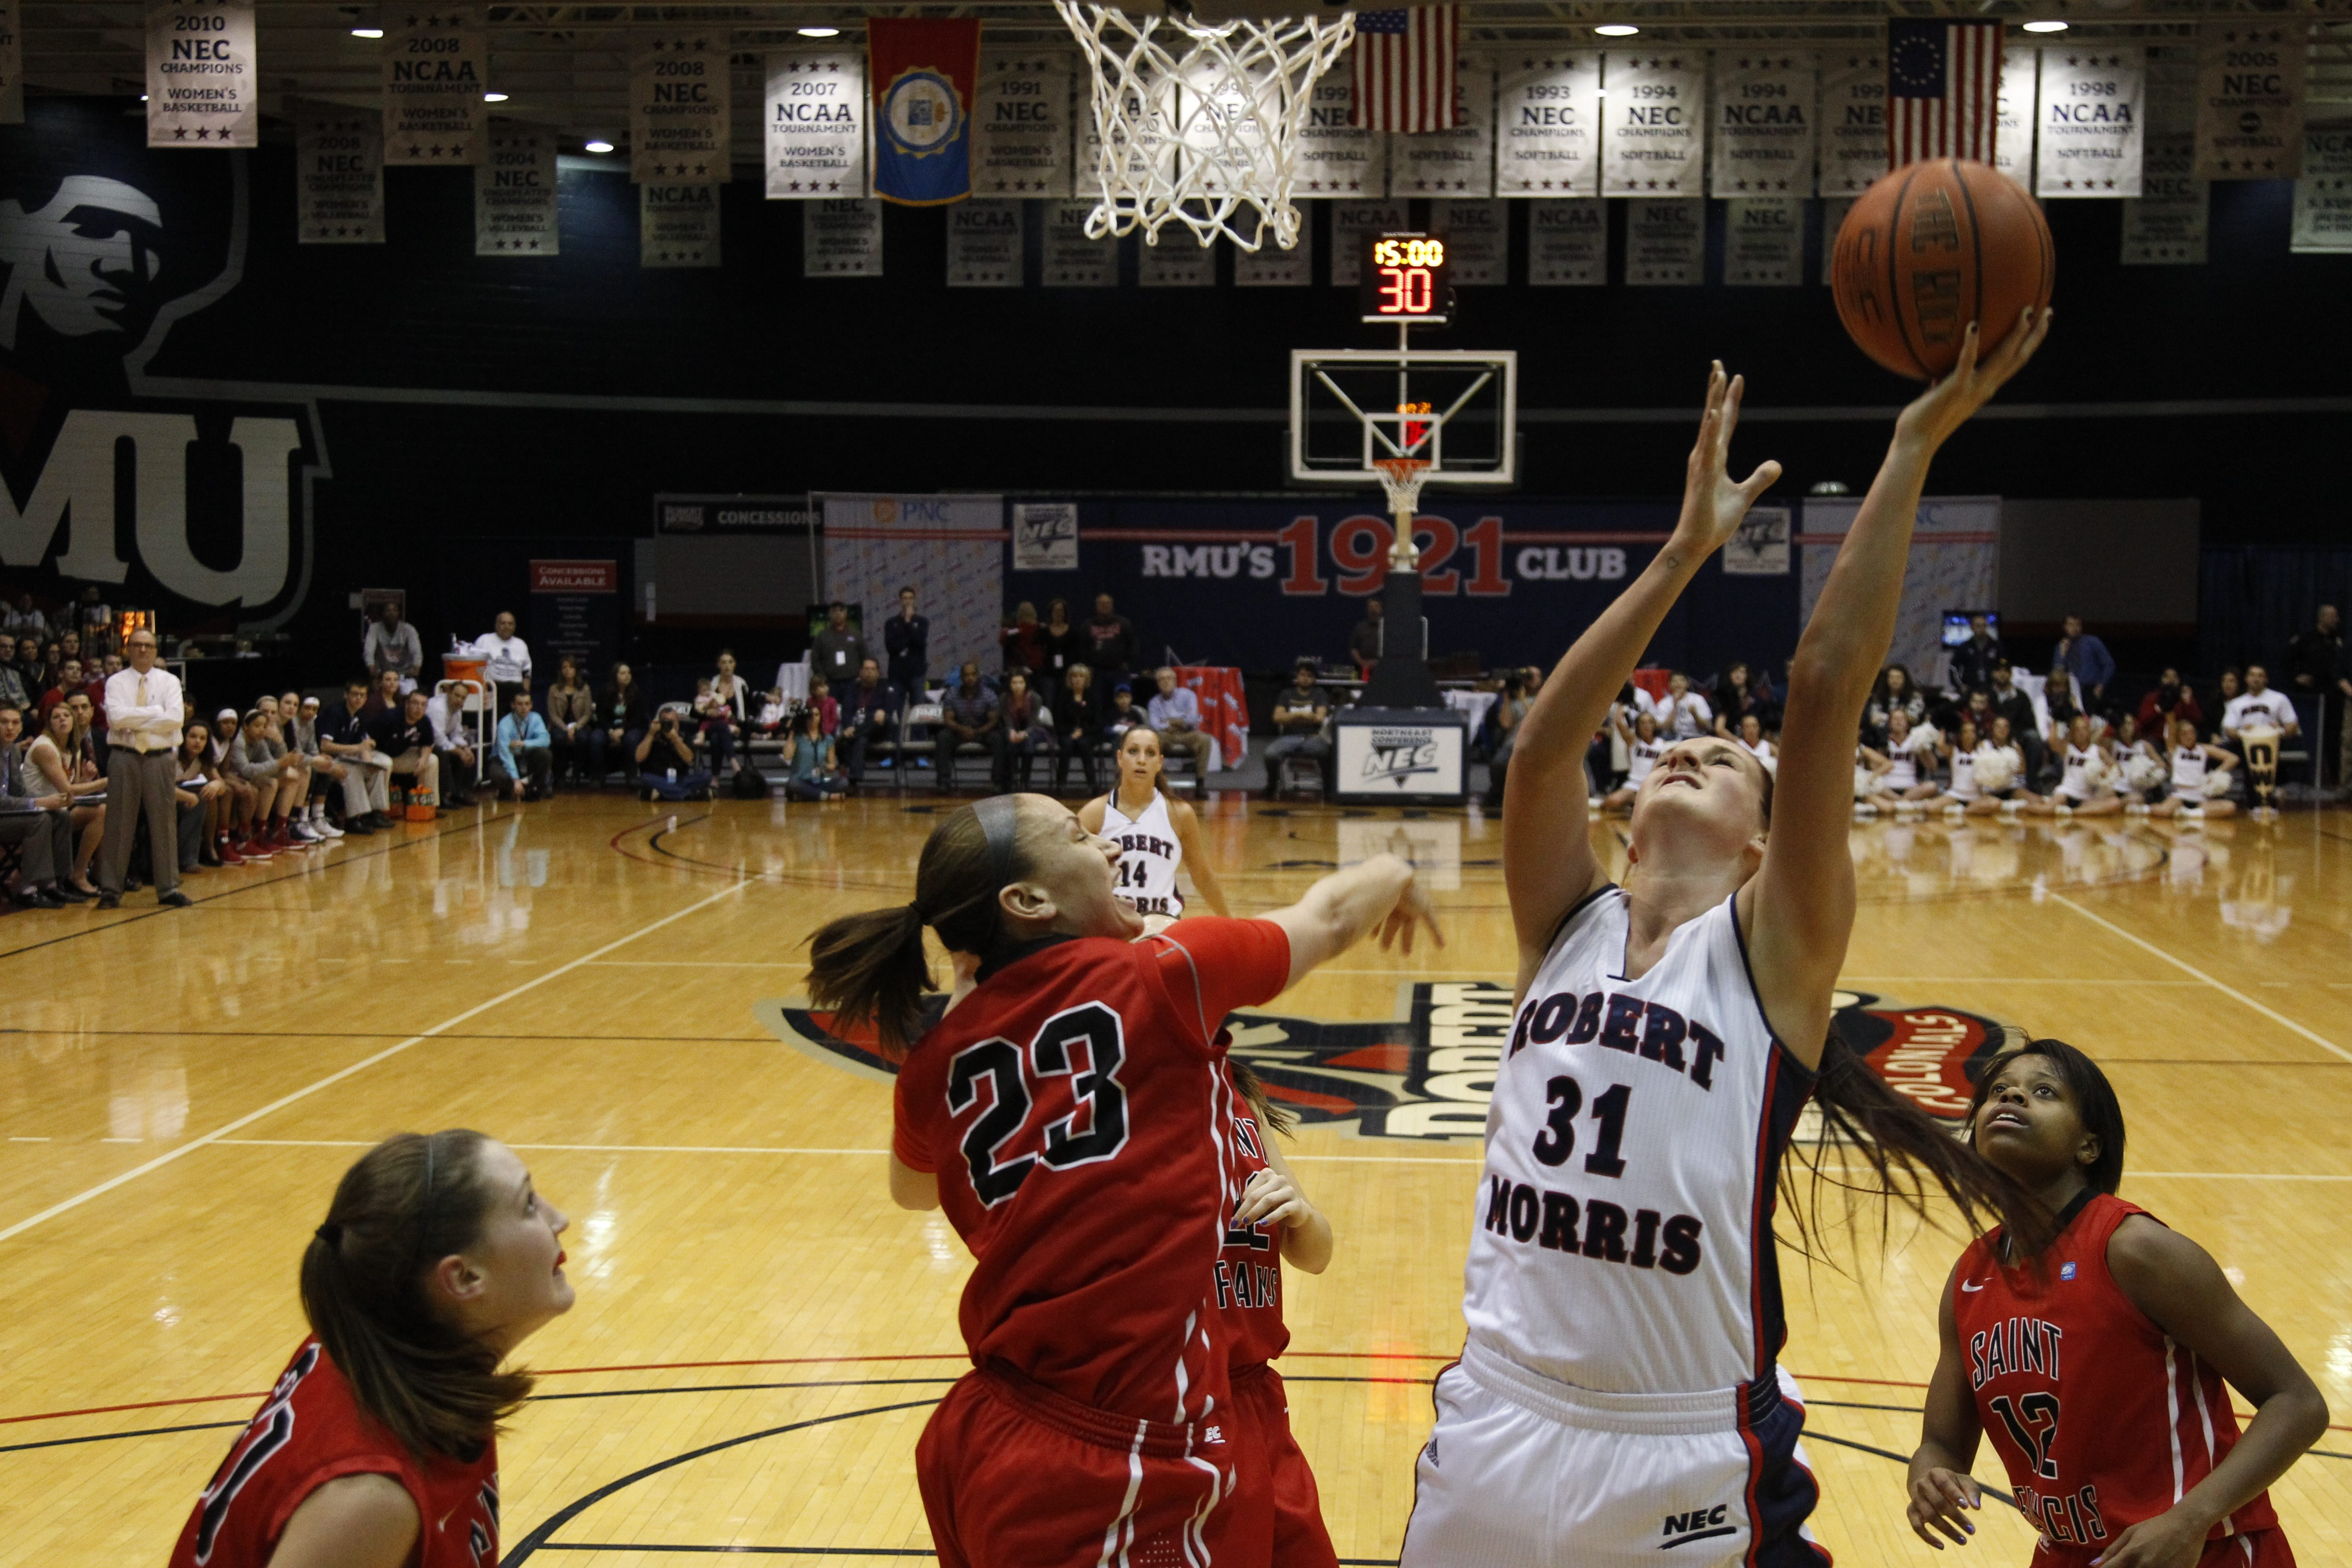 Grand Island graduate Cassie Oursler will start today for Robert Morris when they play Notre Dame in the first round of the NCAAs.